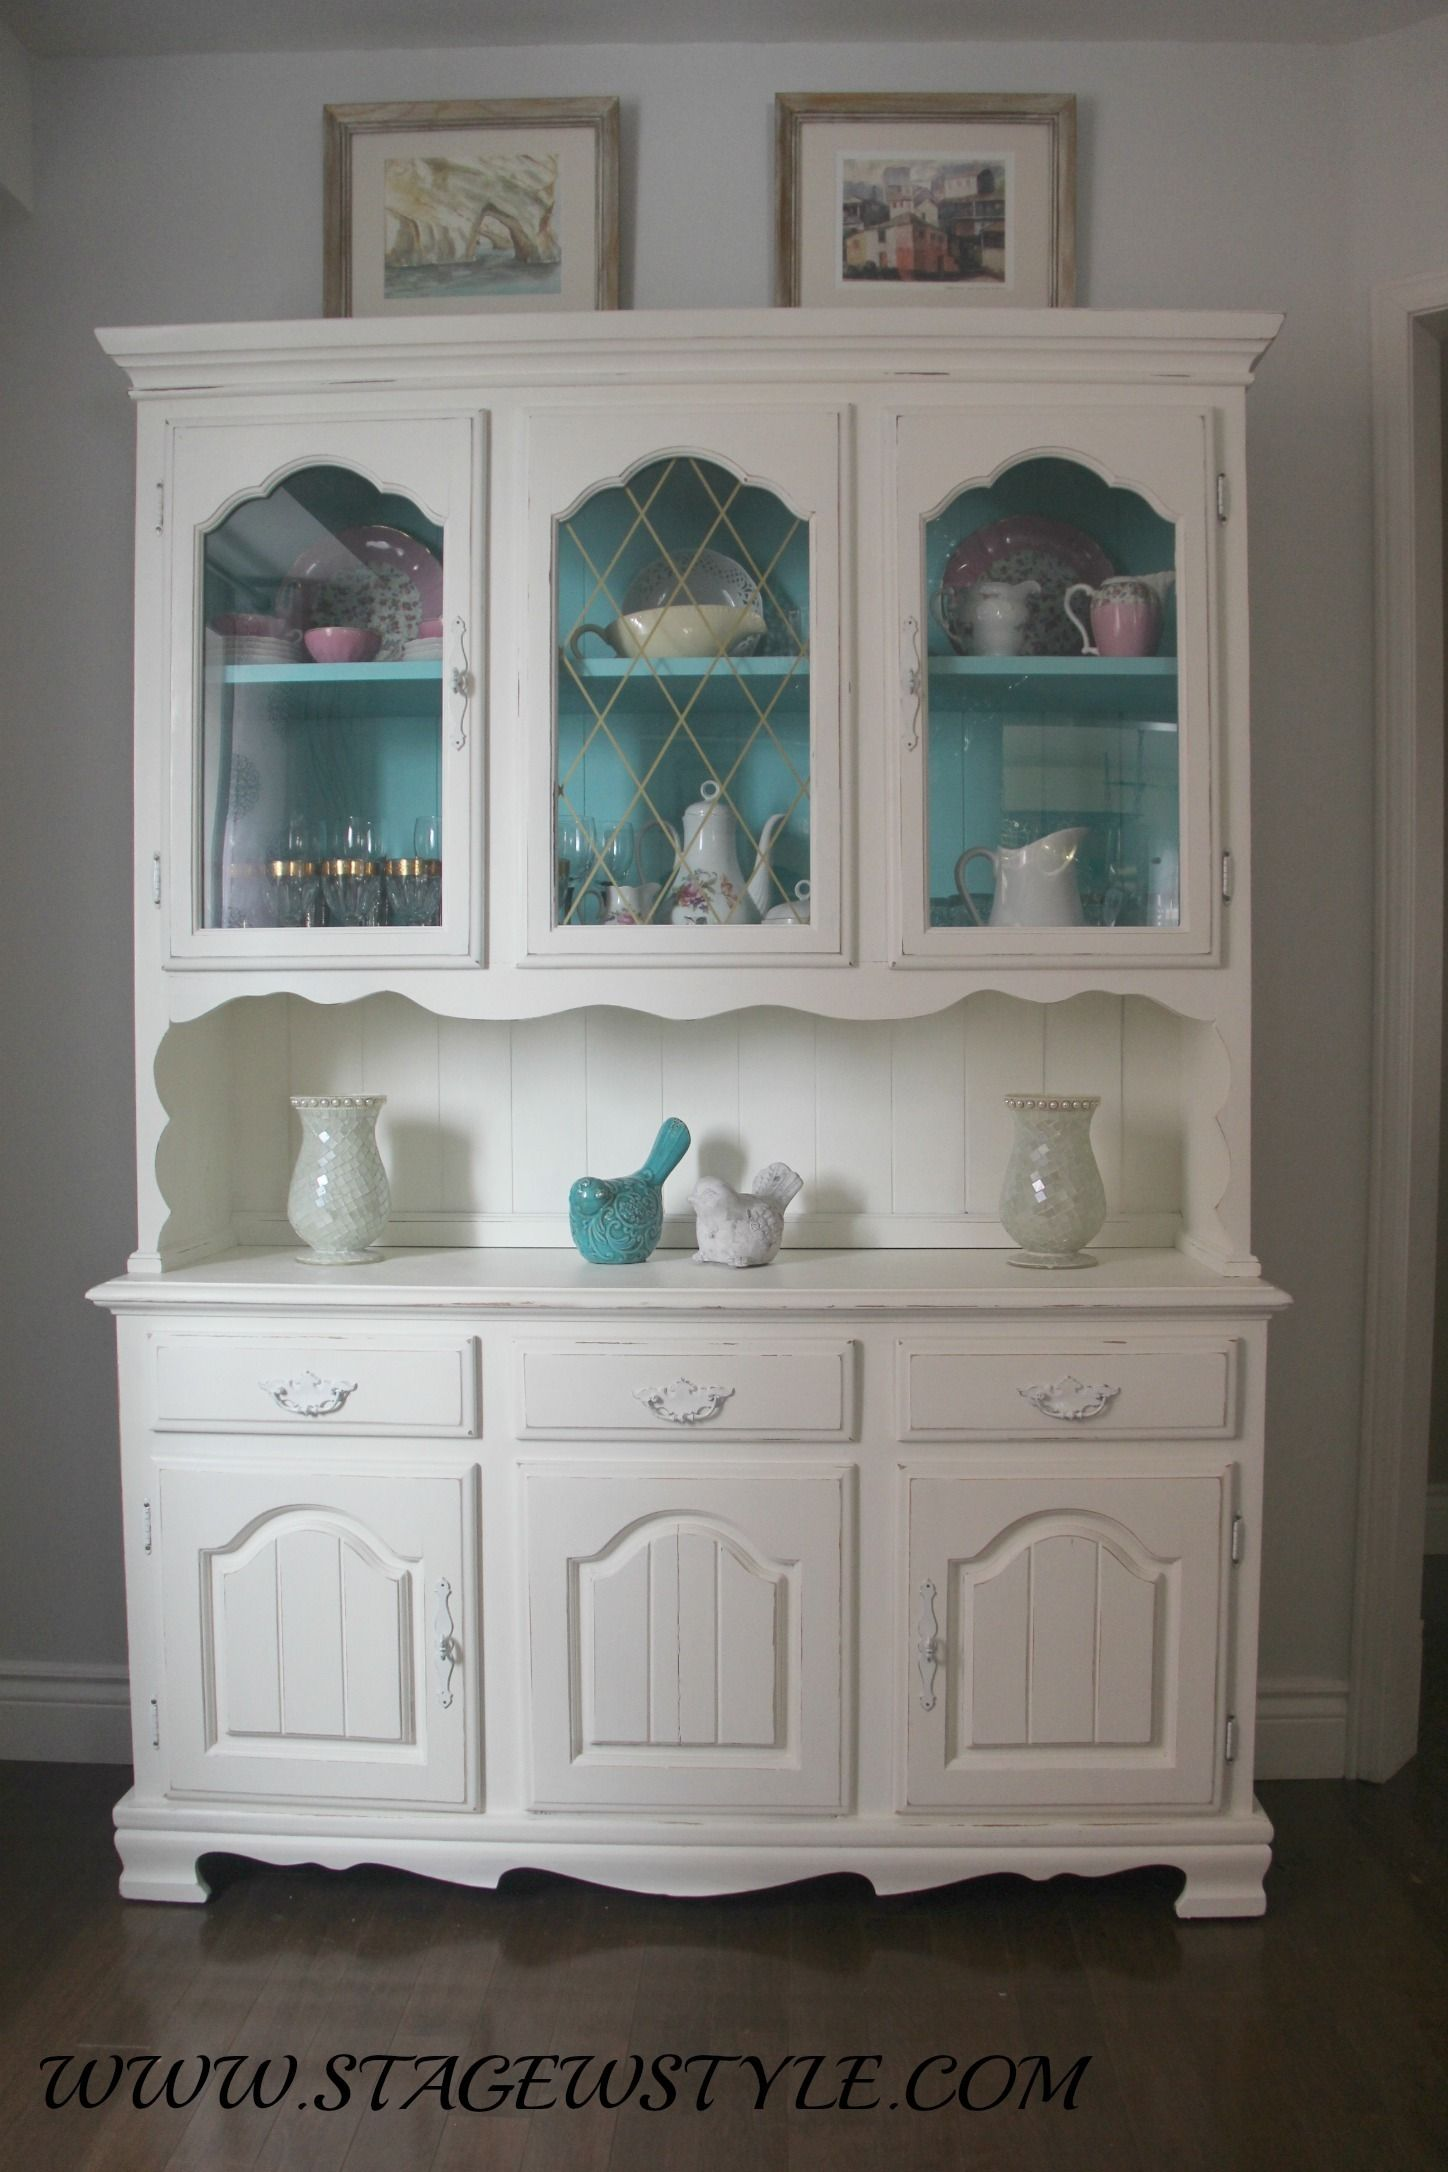 Genial China Cabinet And Table Makeover, Using Inexpensive Home Made Chalk Paint.  Refresh An Old Dark Piece Of Furniture And Give It New Life.